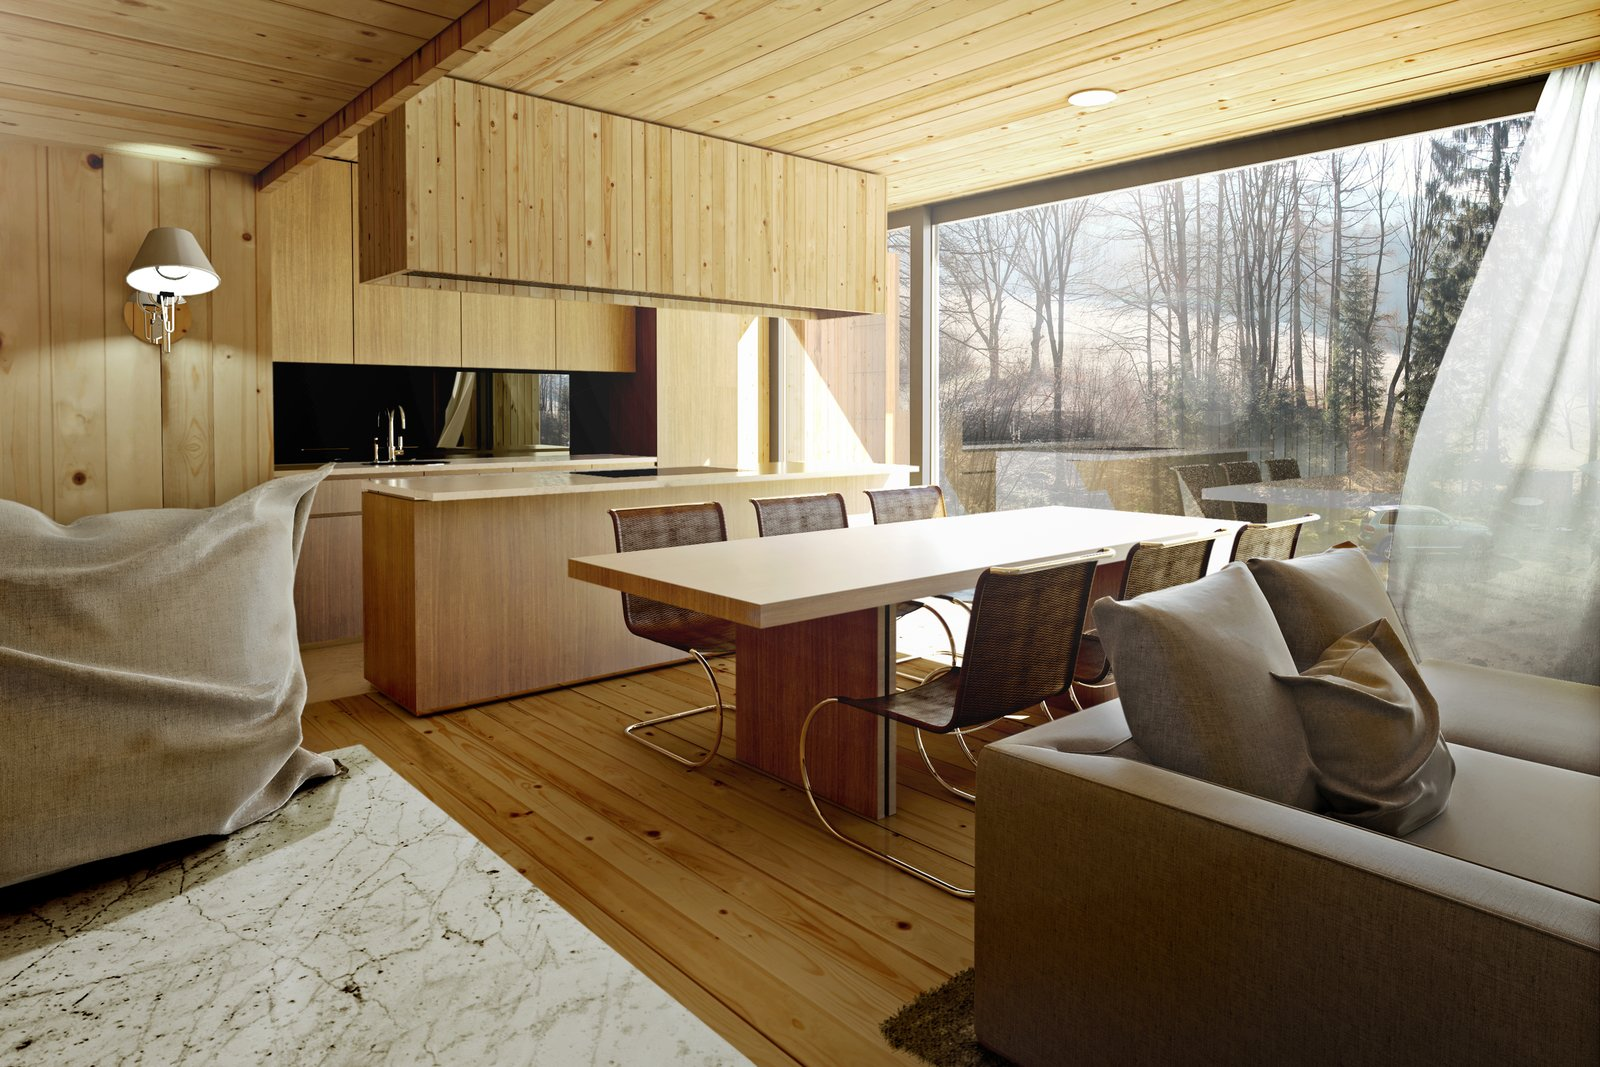 Mountain hut living area with floor-to-ceiling windows